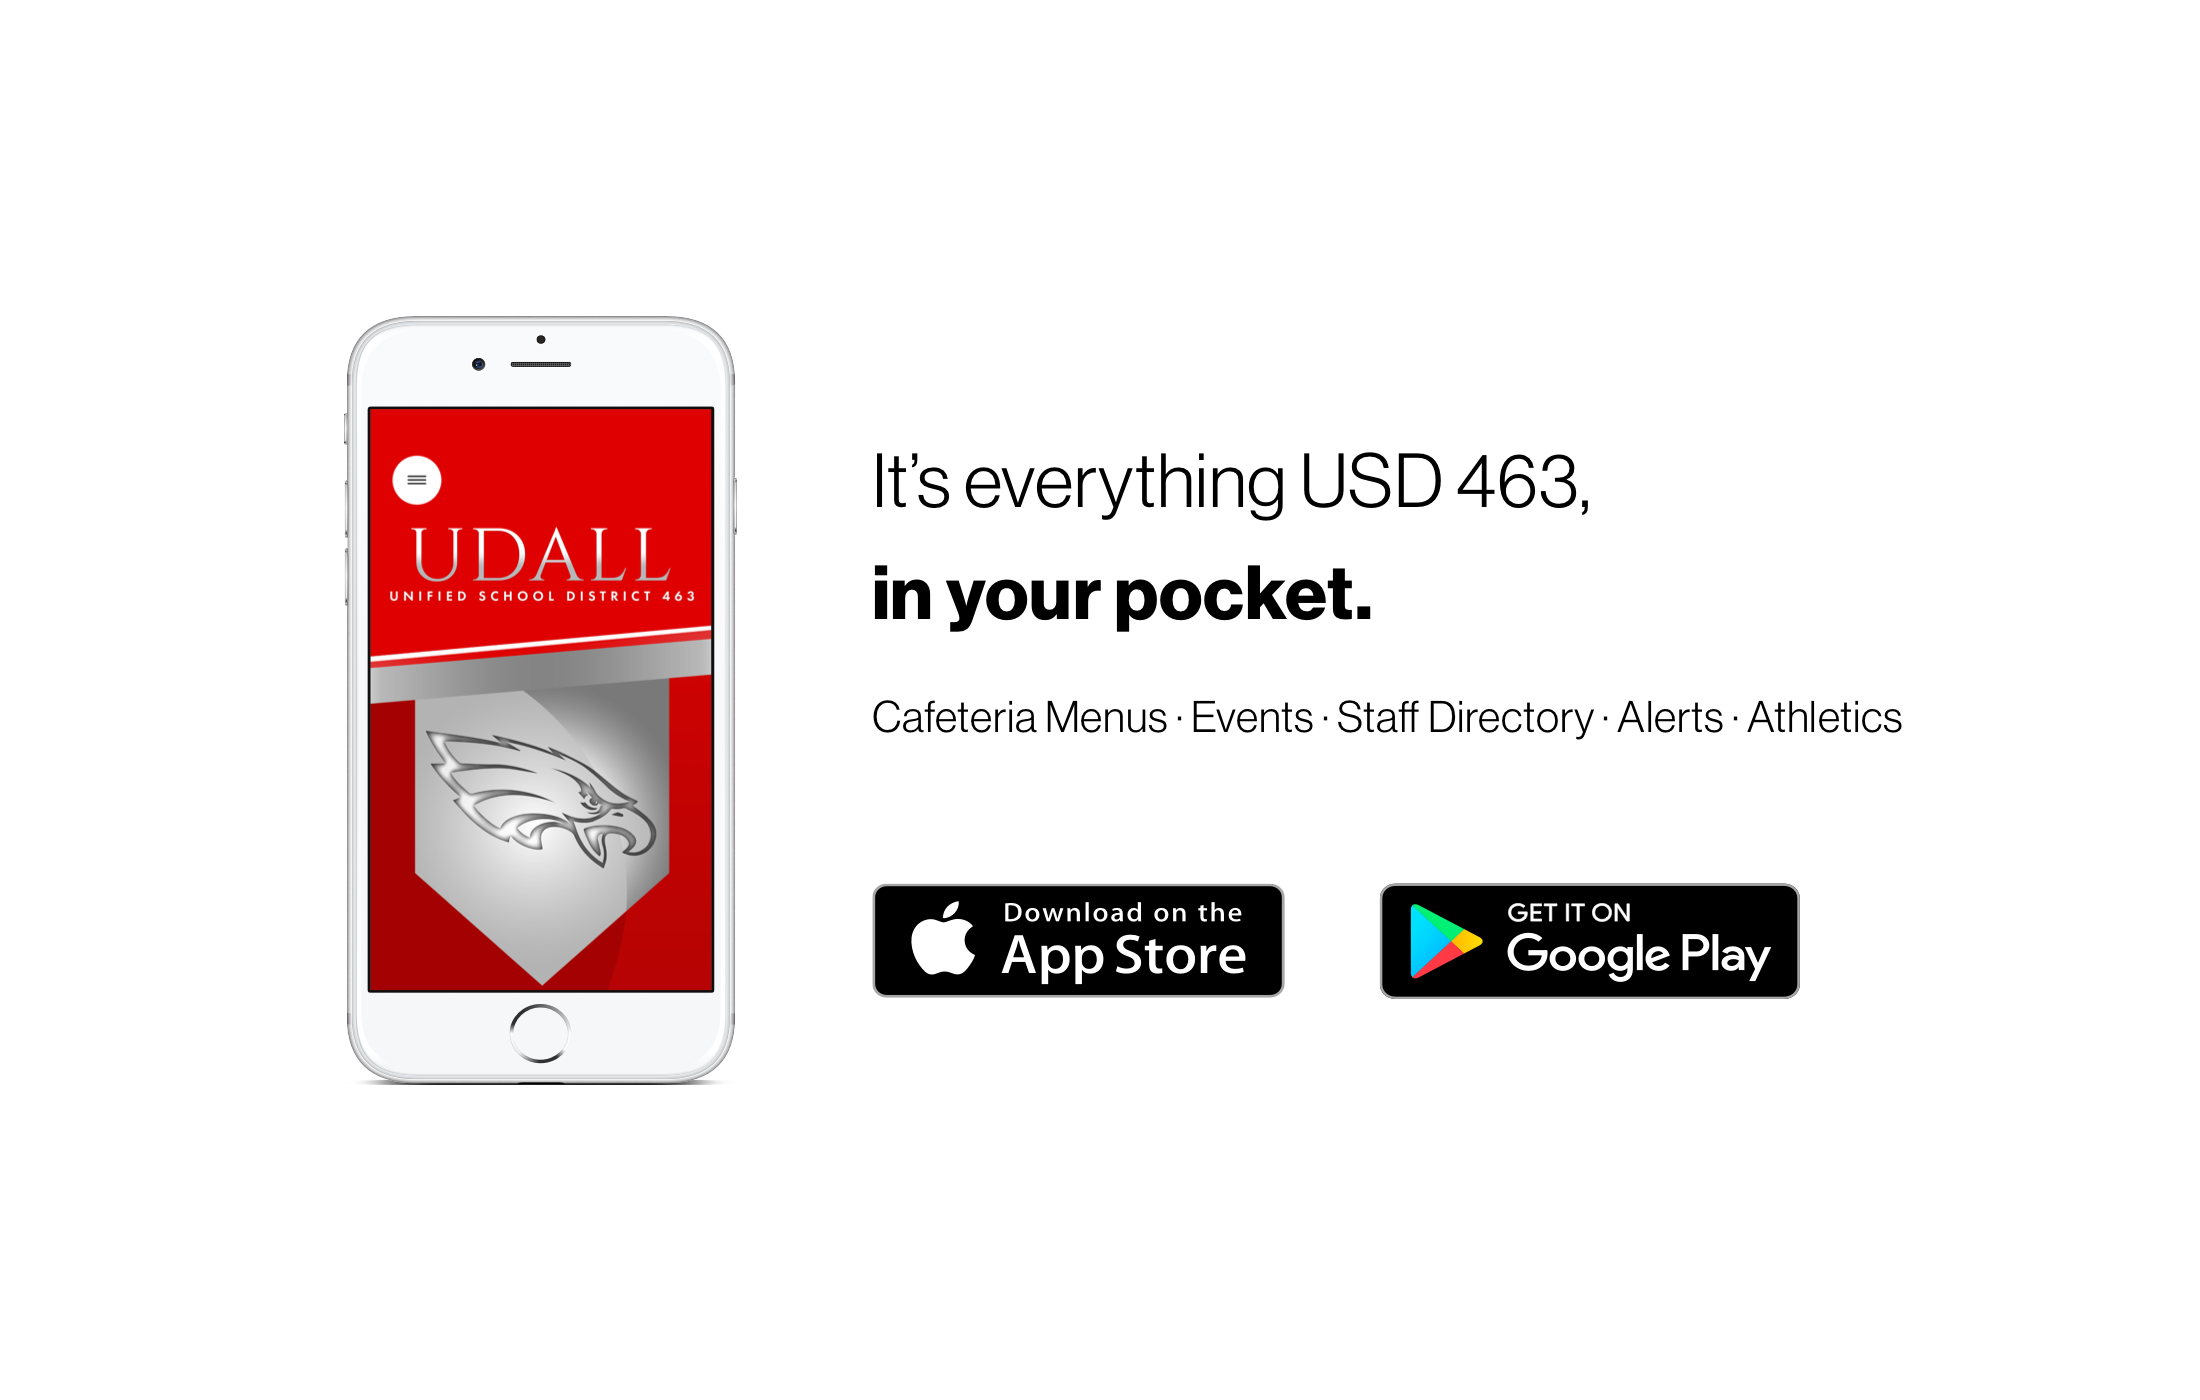 We have a new app. Go to your app store and search for Udall USD 463